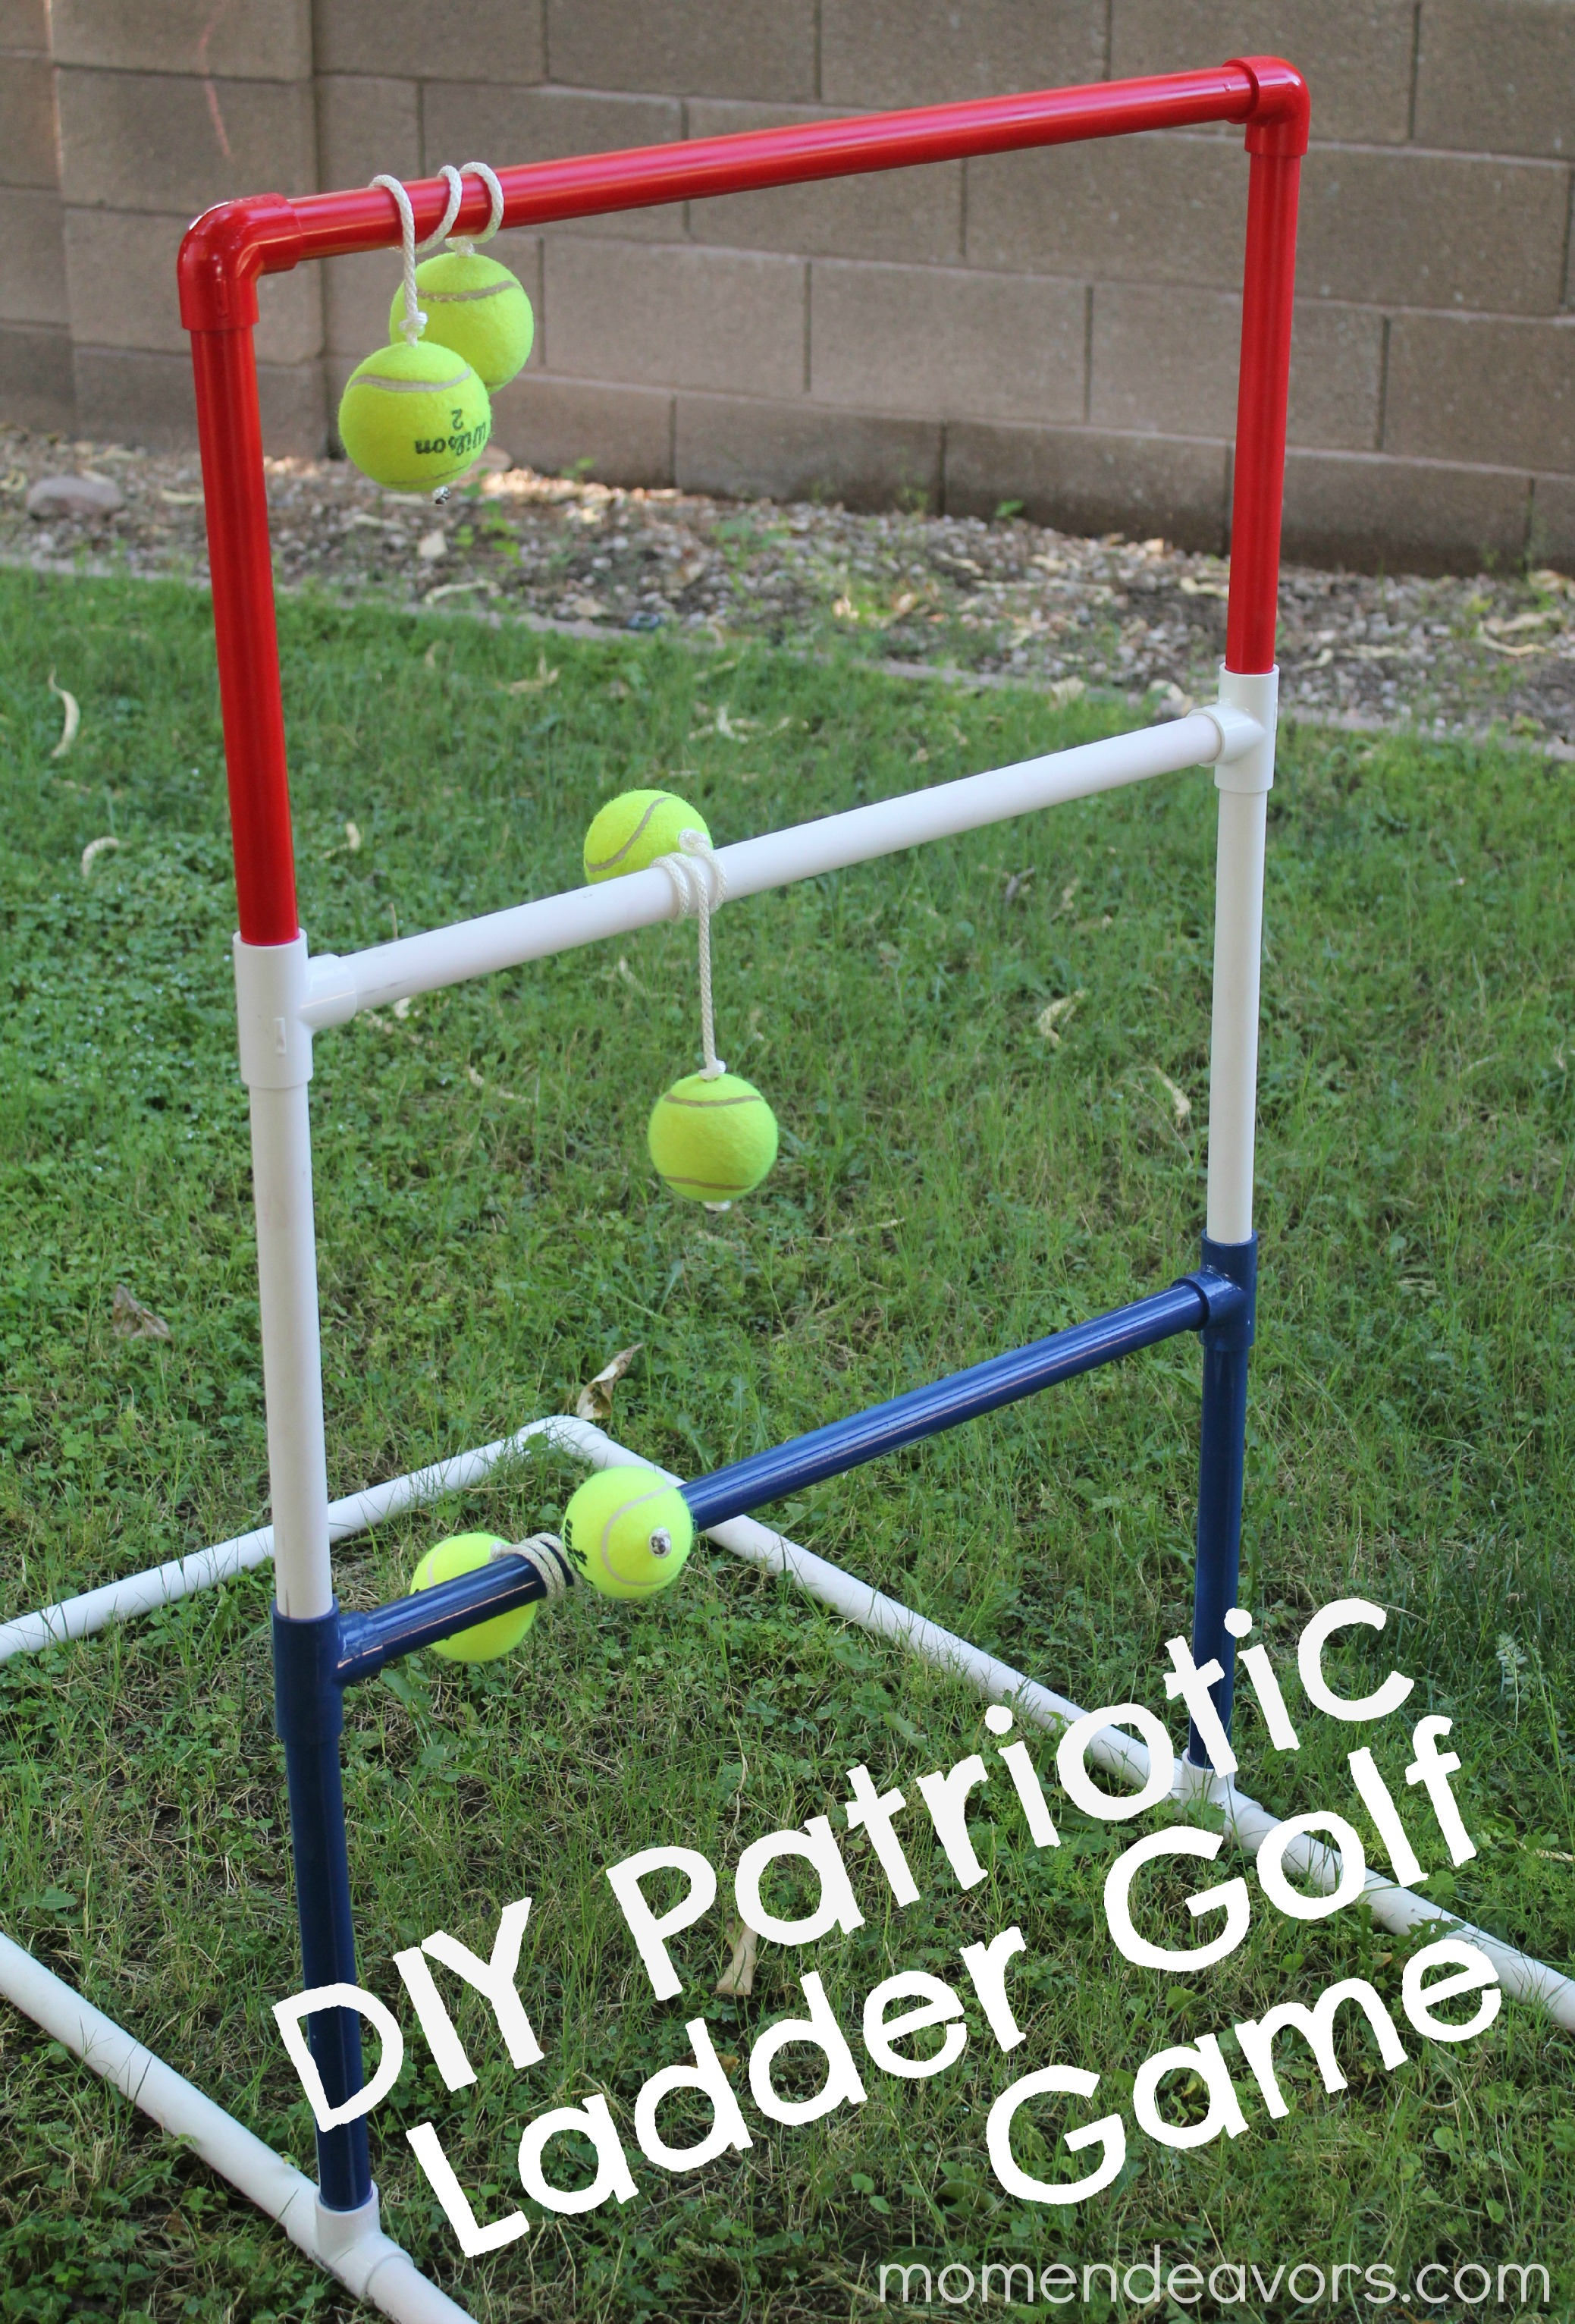 diy patriotic ladder golf